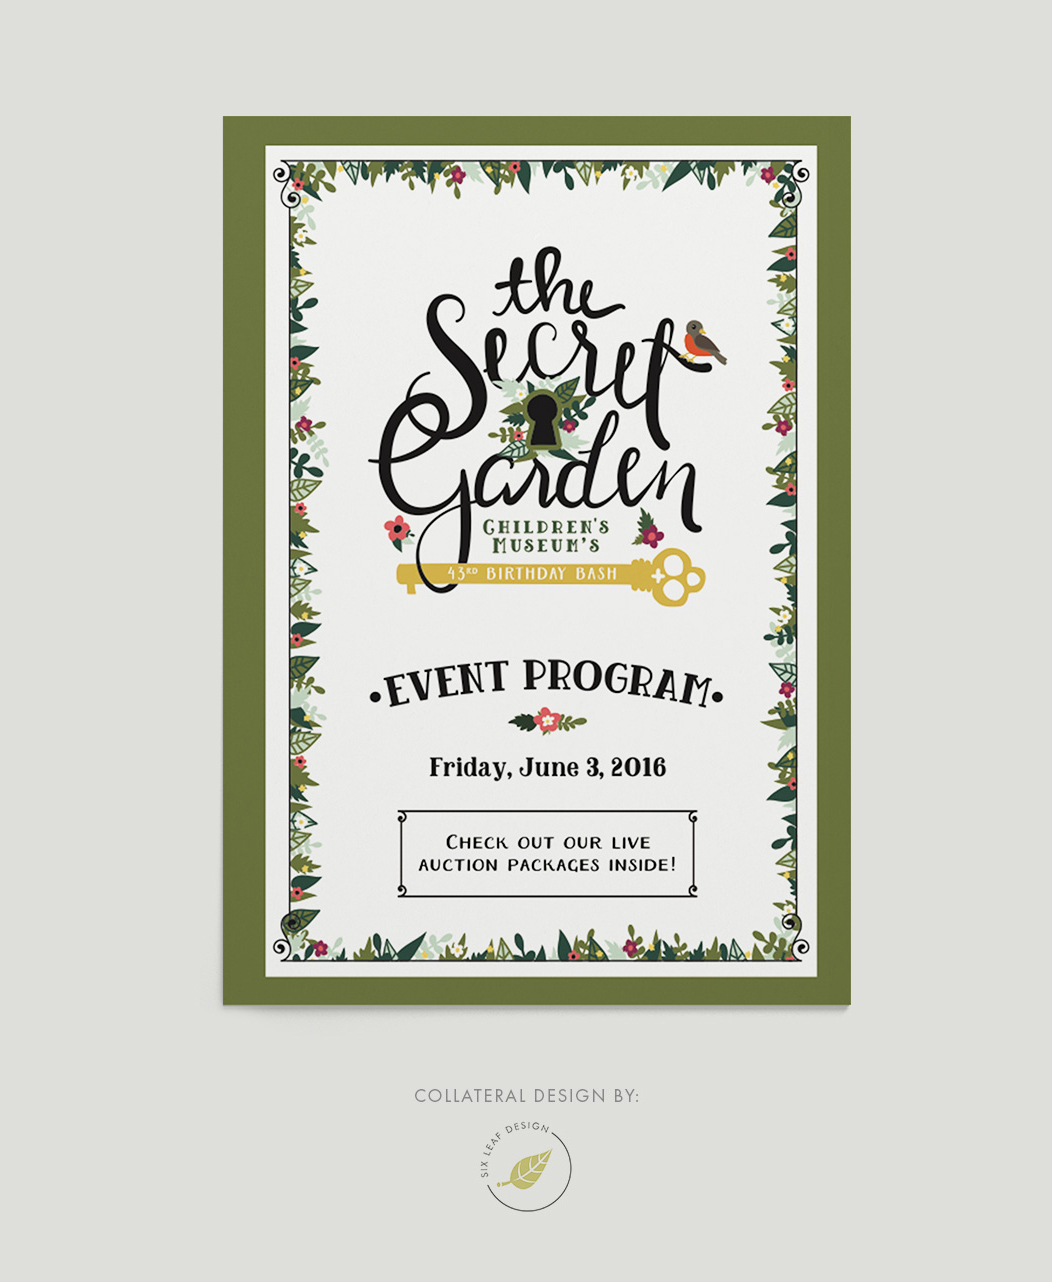 Secret Garden Themed Program Design Featuring Custom Hand-Lettering and Floral Illustrations